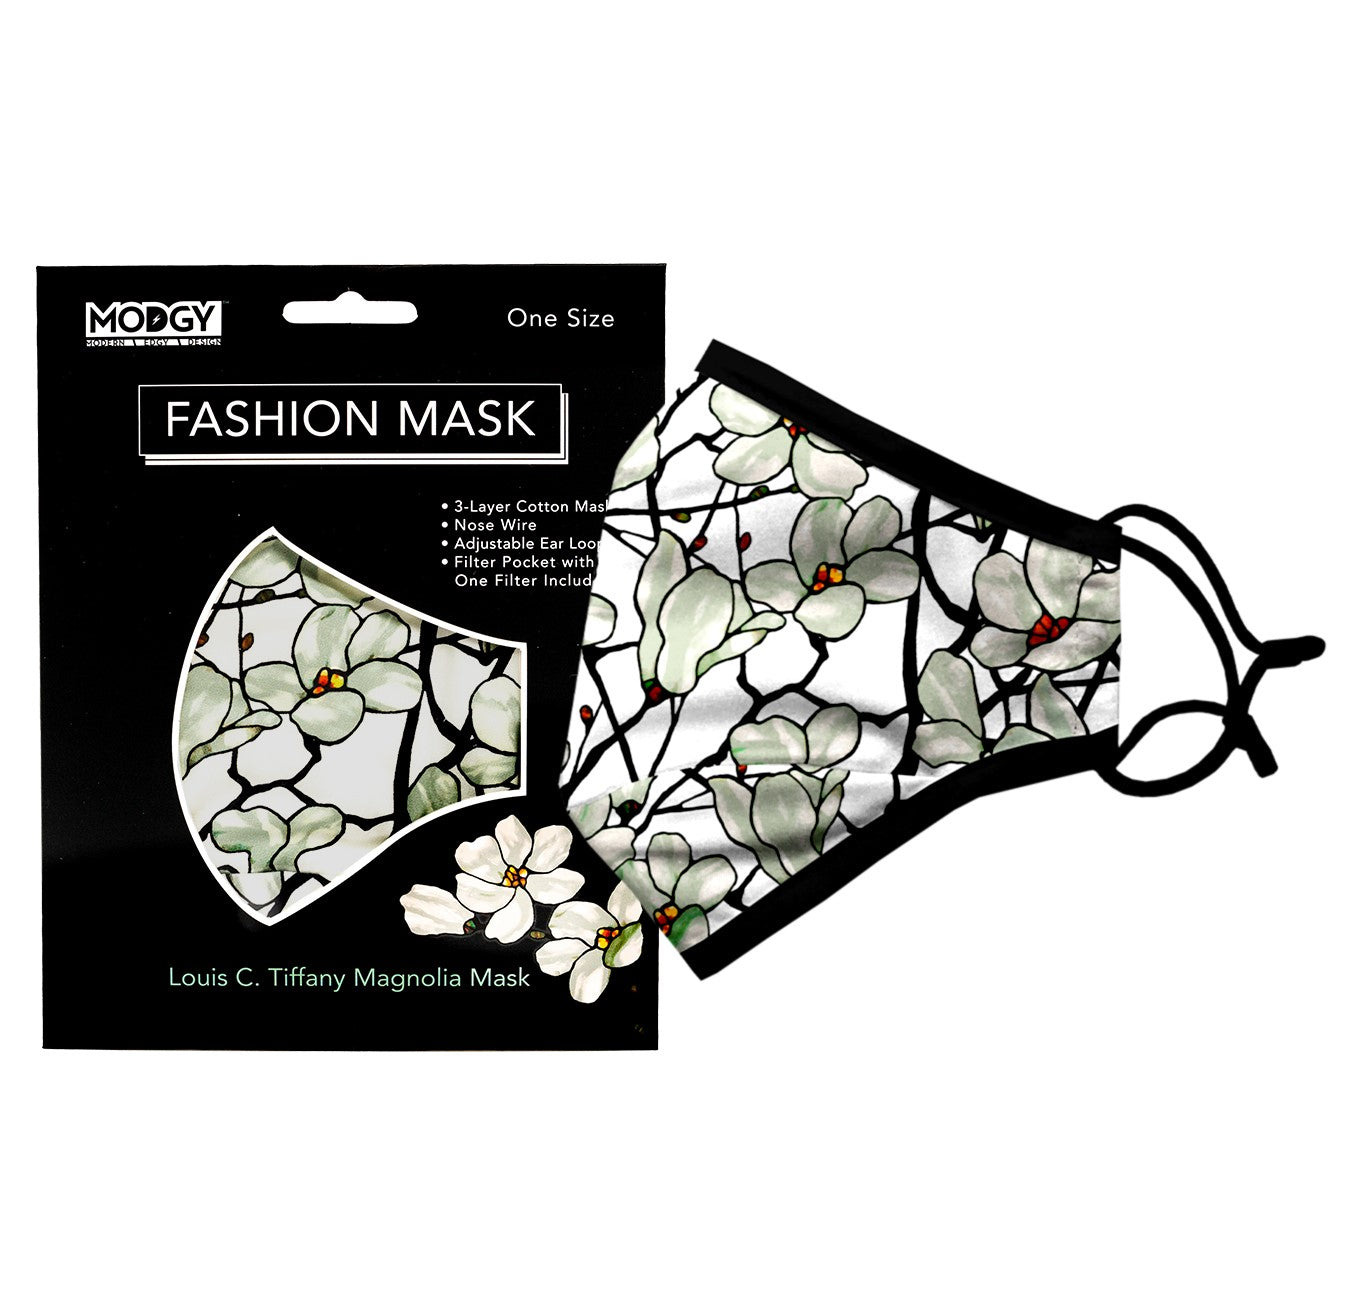 Louis C. Tiffany Magnolia Window Fashion Mask